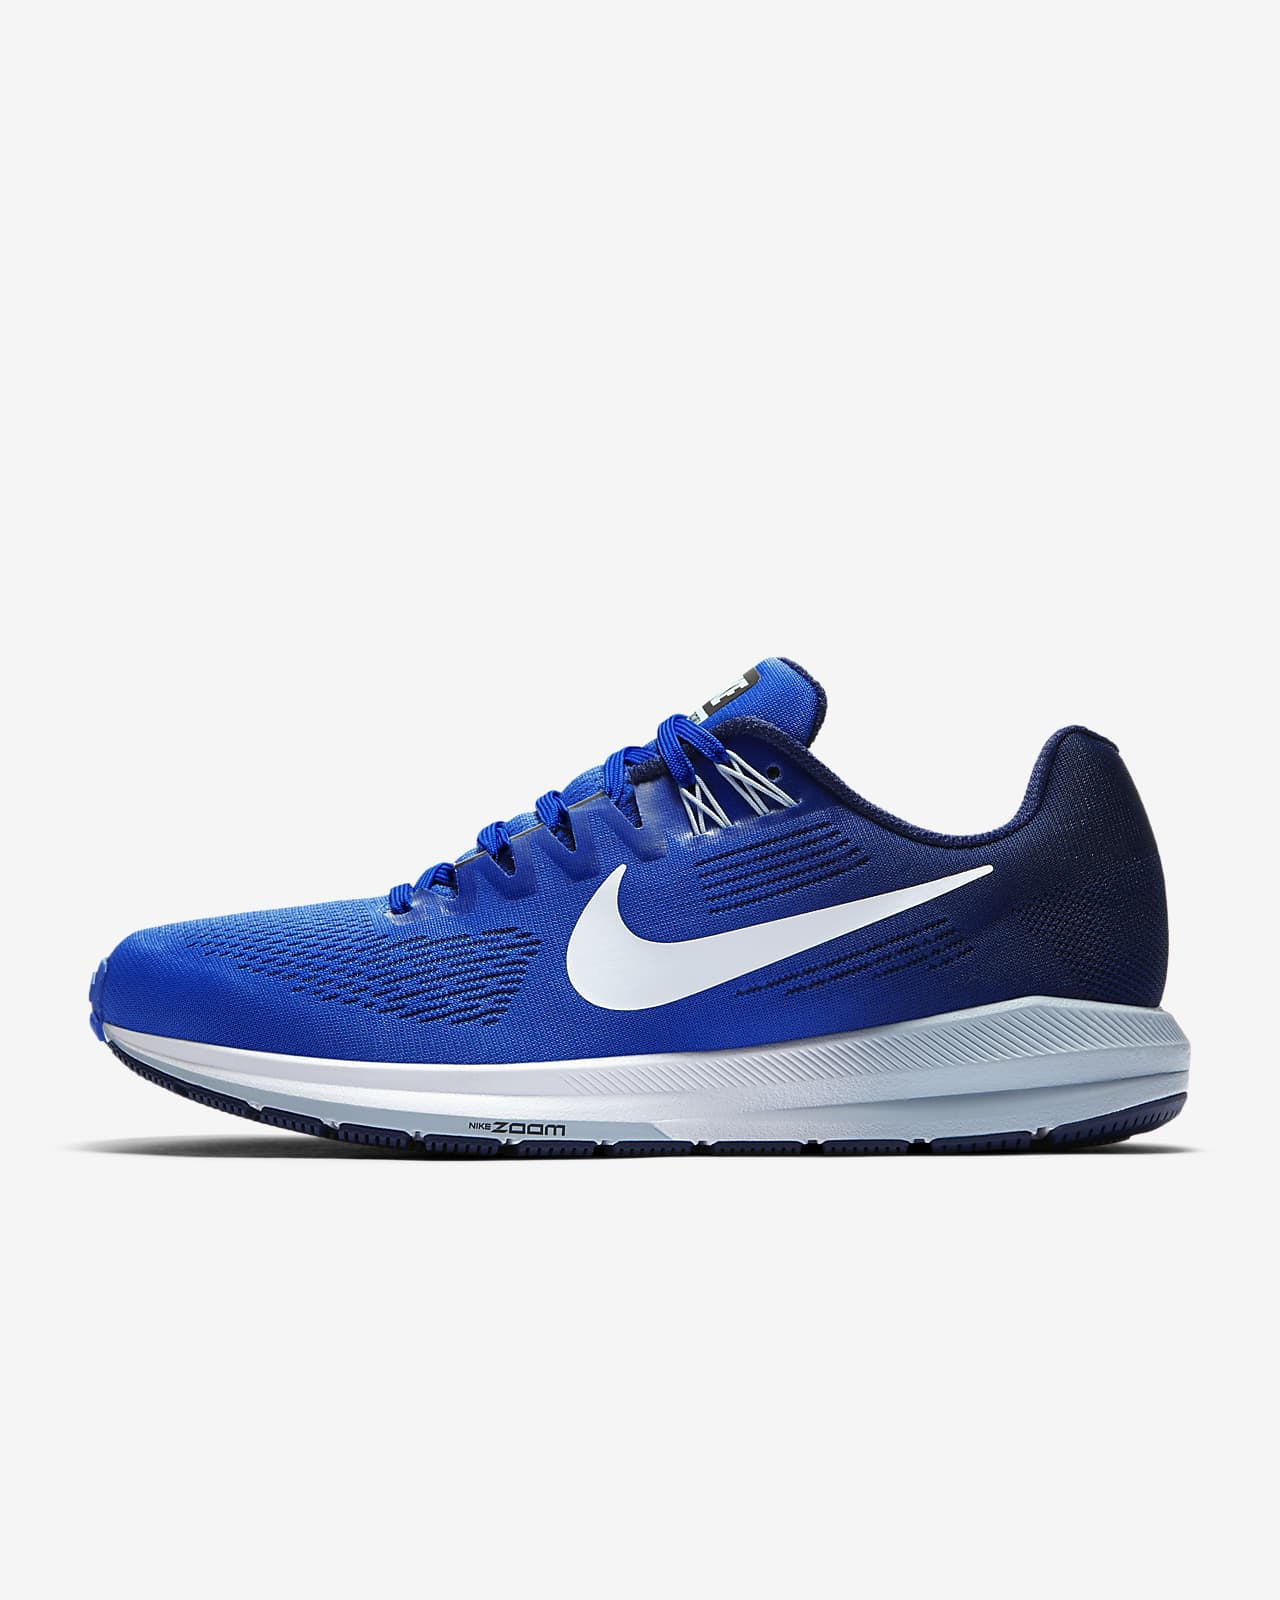 Chaussure de running Nike Air Zoom Structure 21 pour Homme